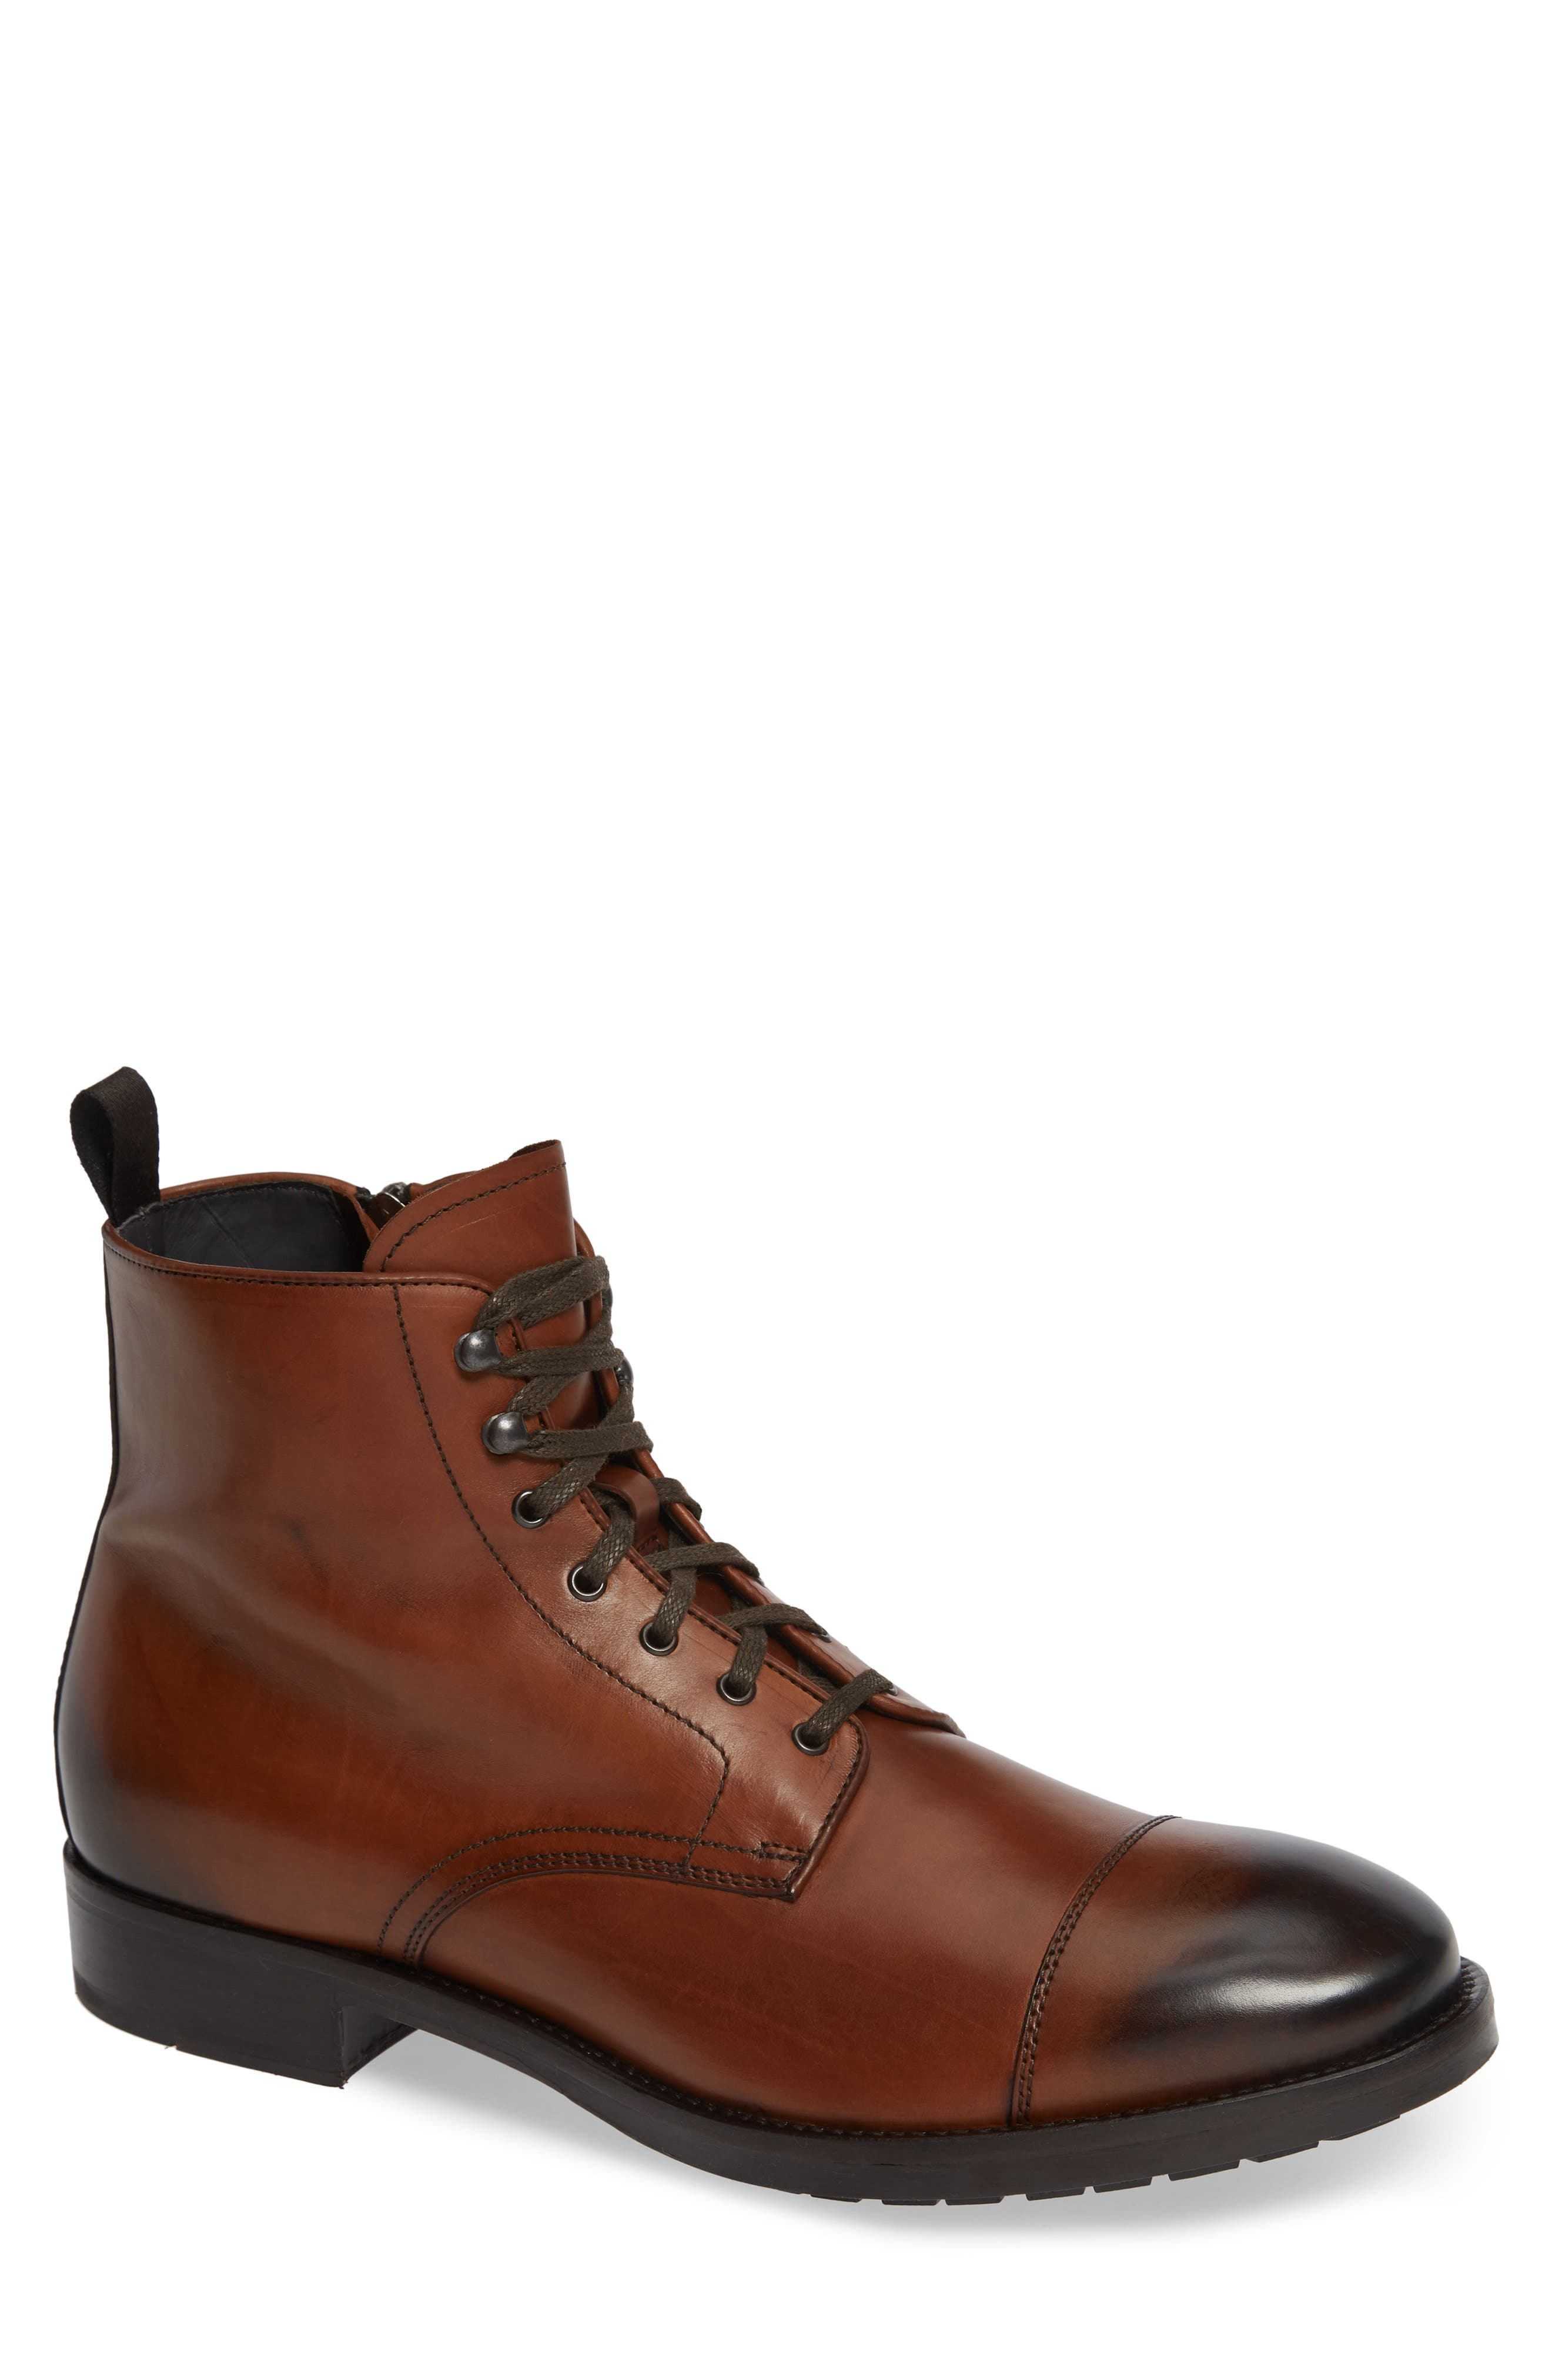 TO BOOT NEW YORK Men'S Concord Leather Cap Toe Boots in Brown Leather